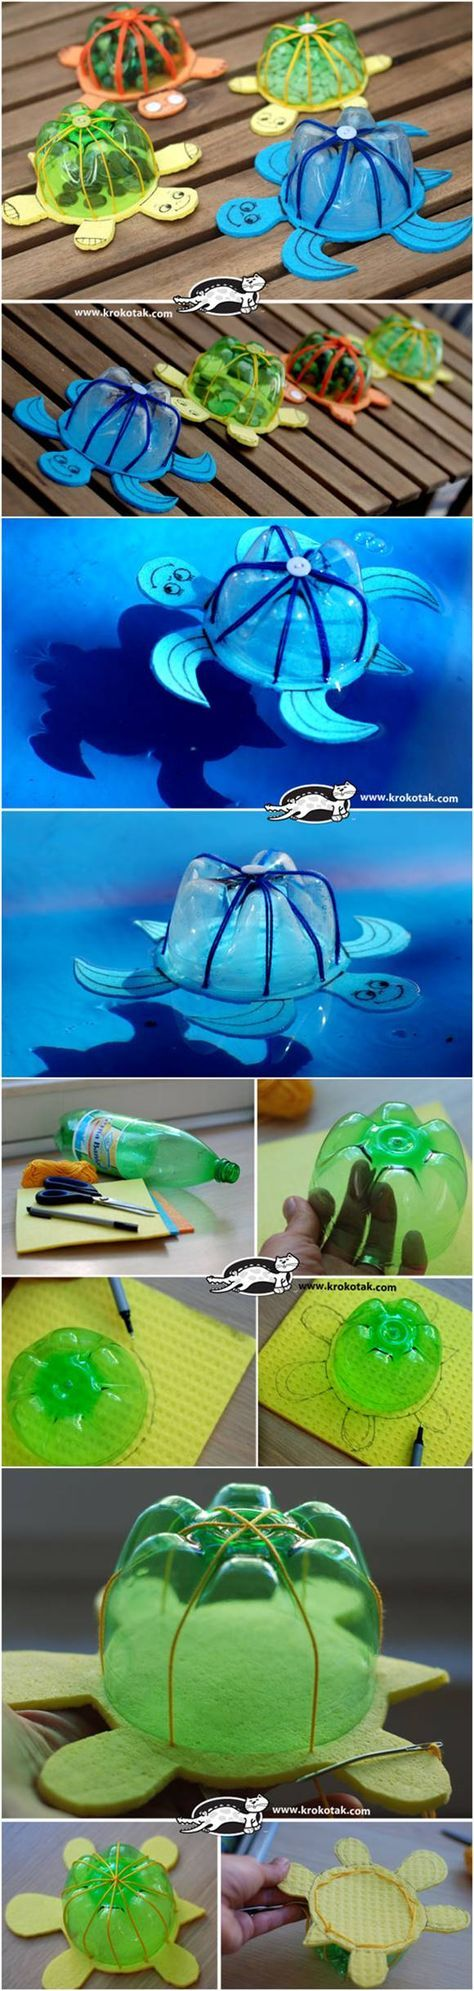 How to Make DIY Turtle Toys from Recycled Plastic Bottles #craft #kids #toy…